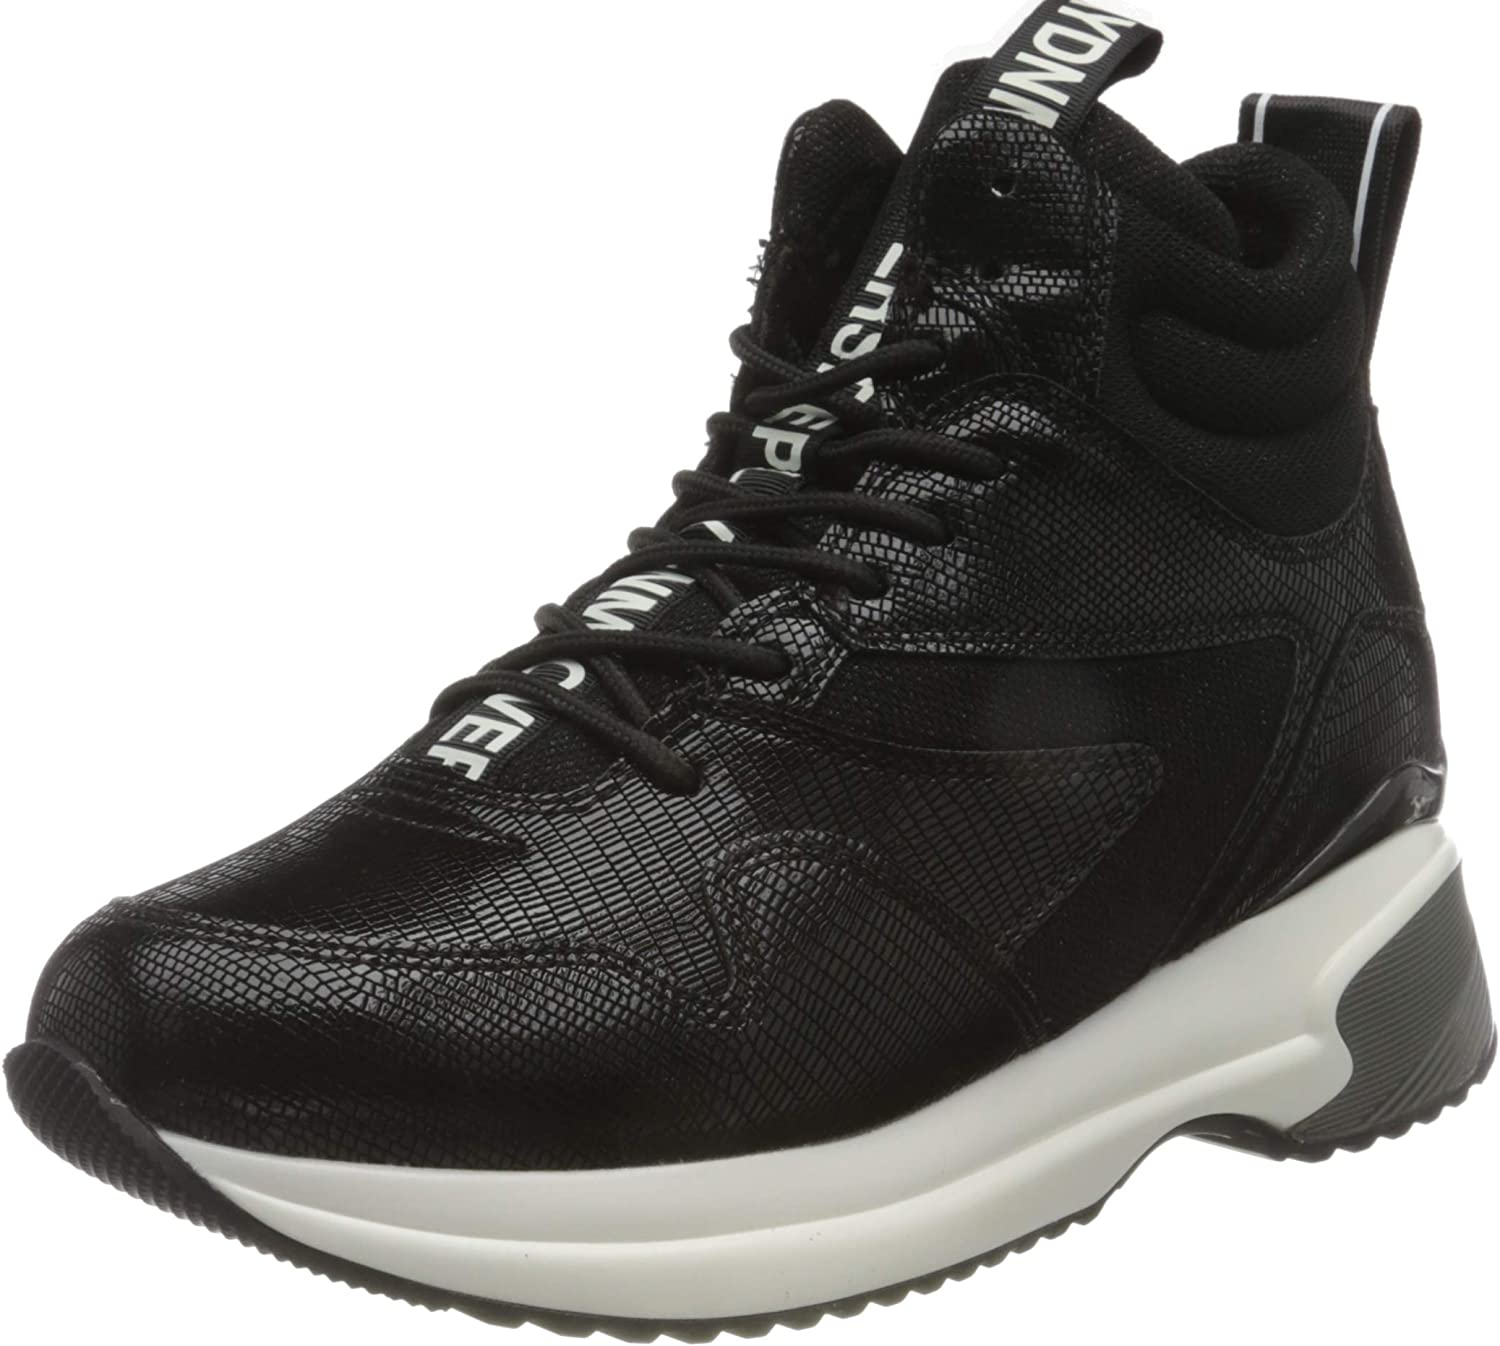 Replay Women's Sneakers SEAL limited product Low-Top Genuine